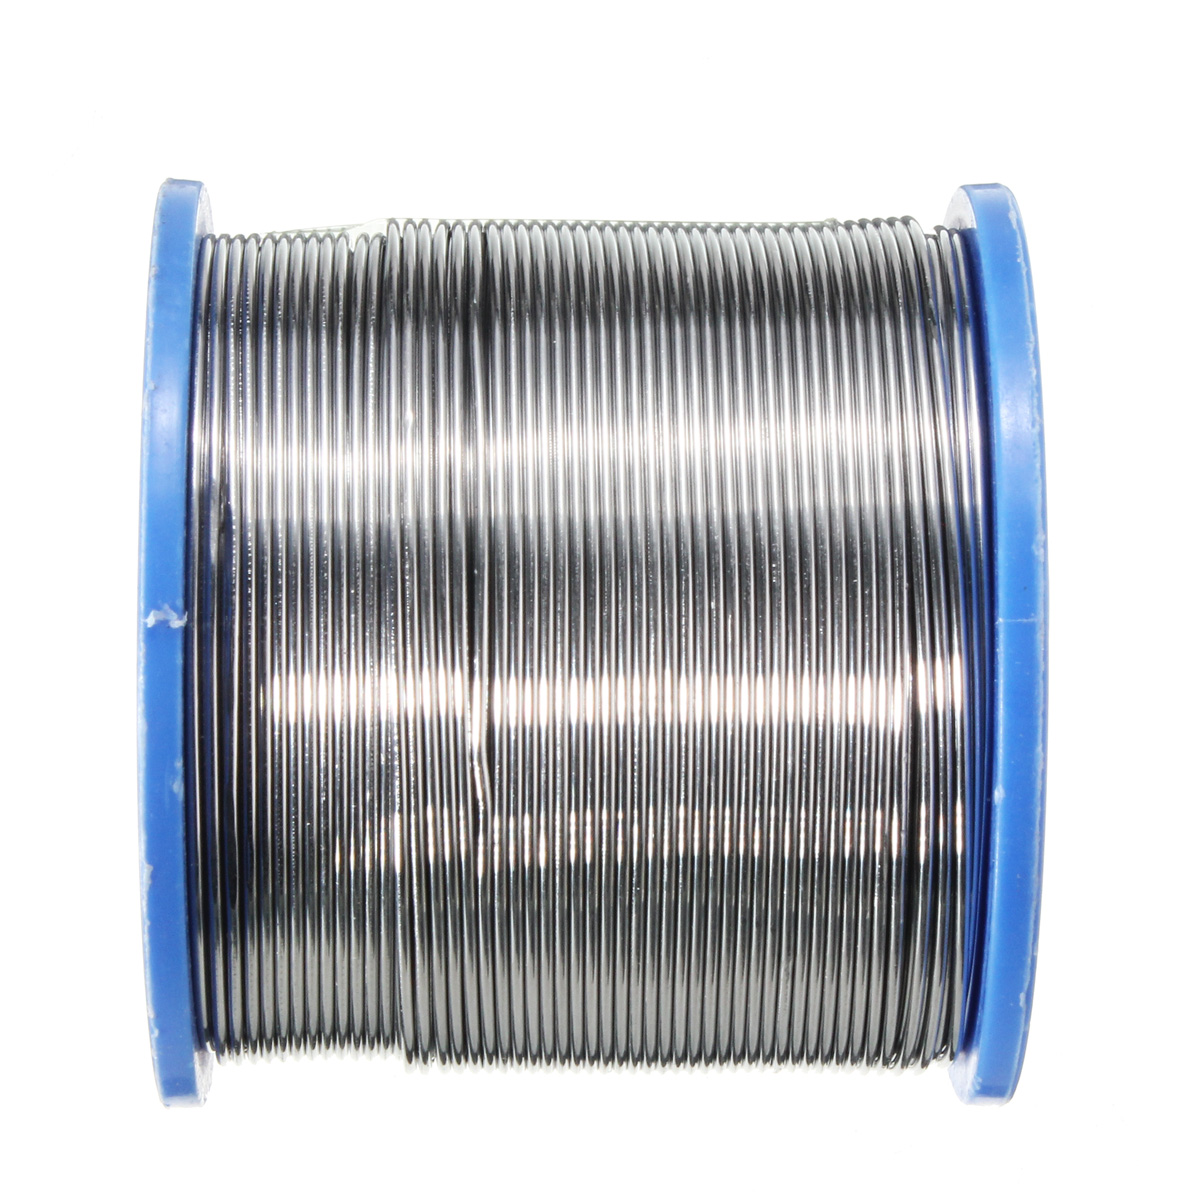 400g 60/40 Tin Lead 1.8-2.2% Flux 0.8mm Dia Soldering Solder Wire Reel